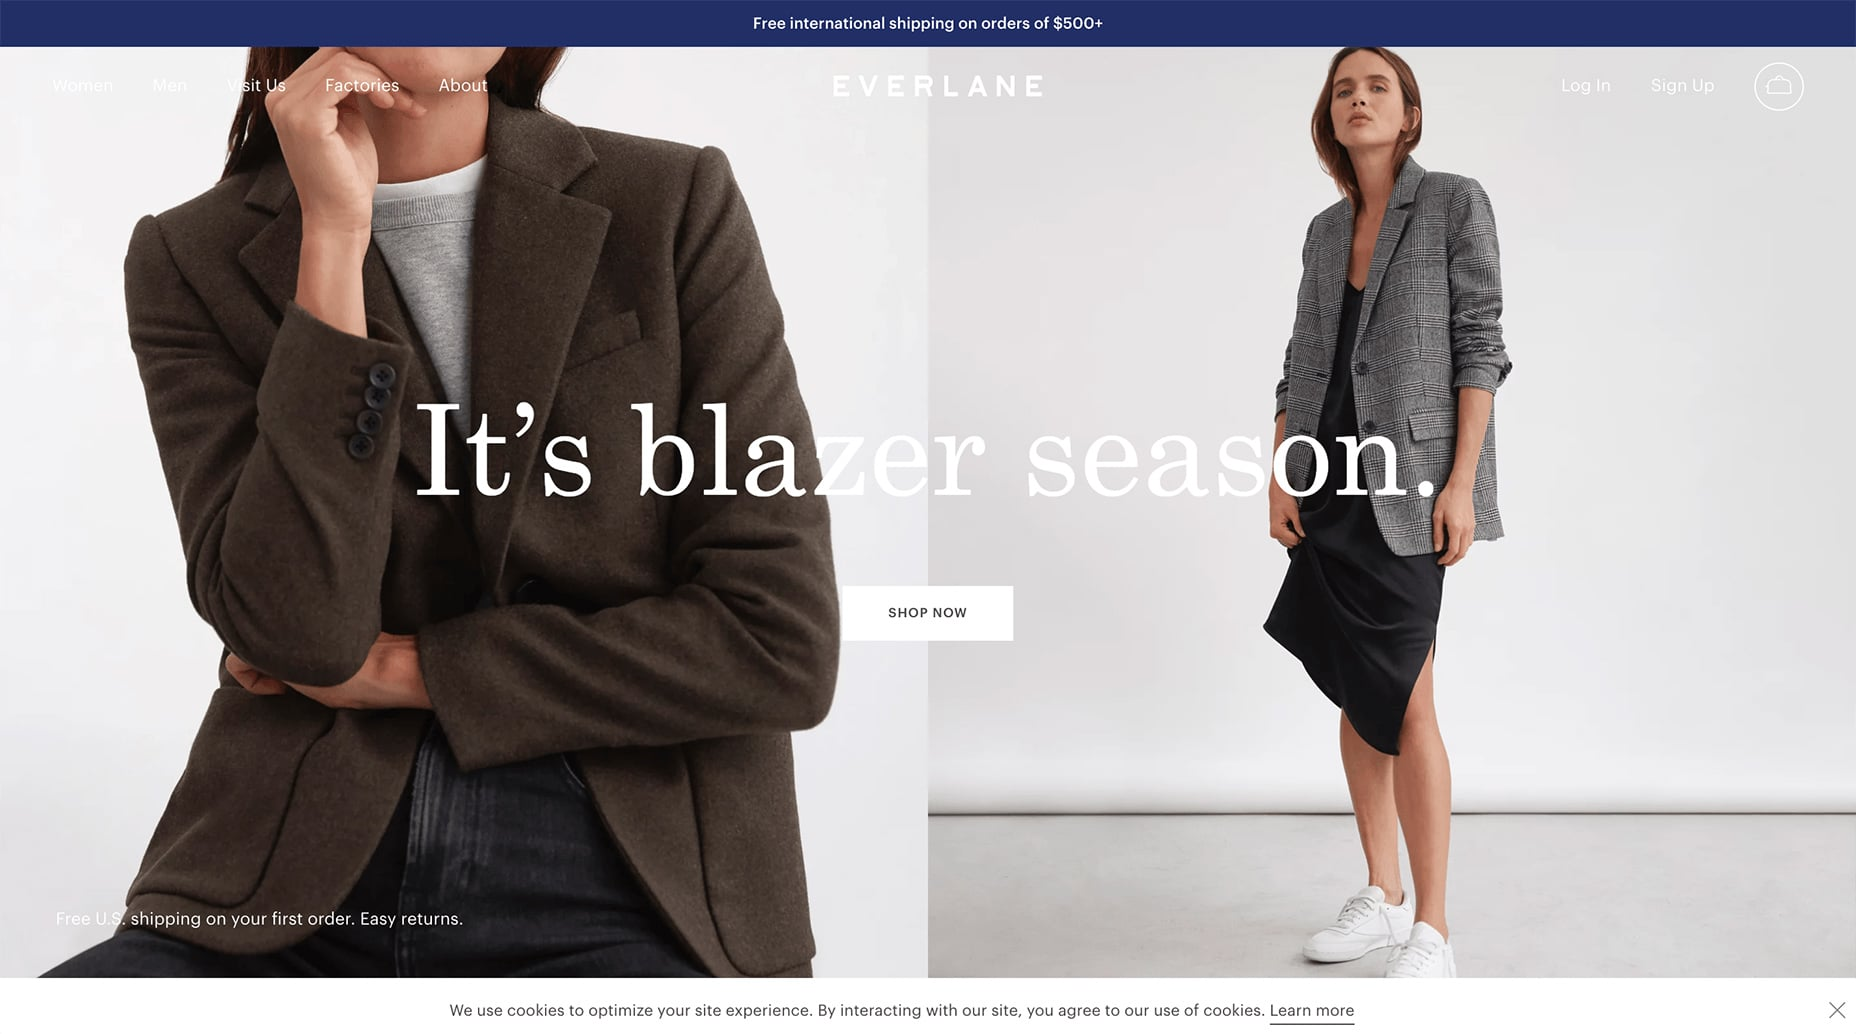 Everlane's Top Bar Opt-in